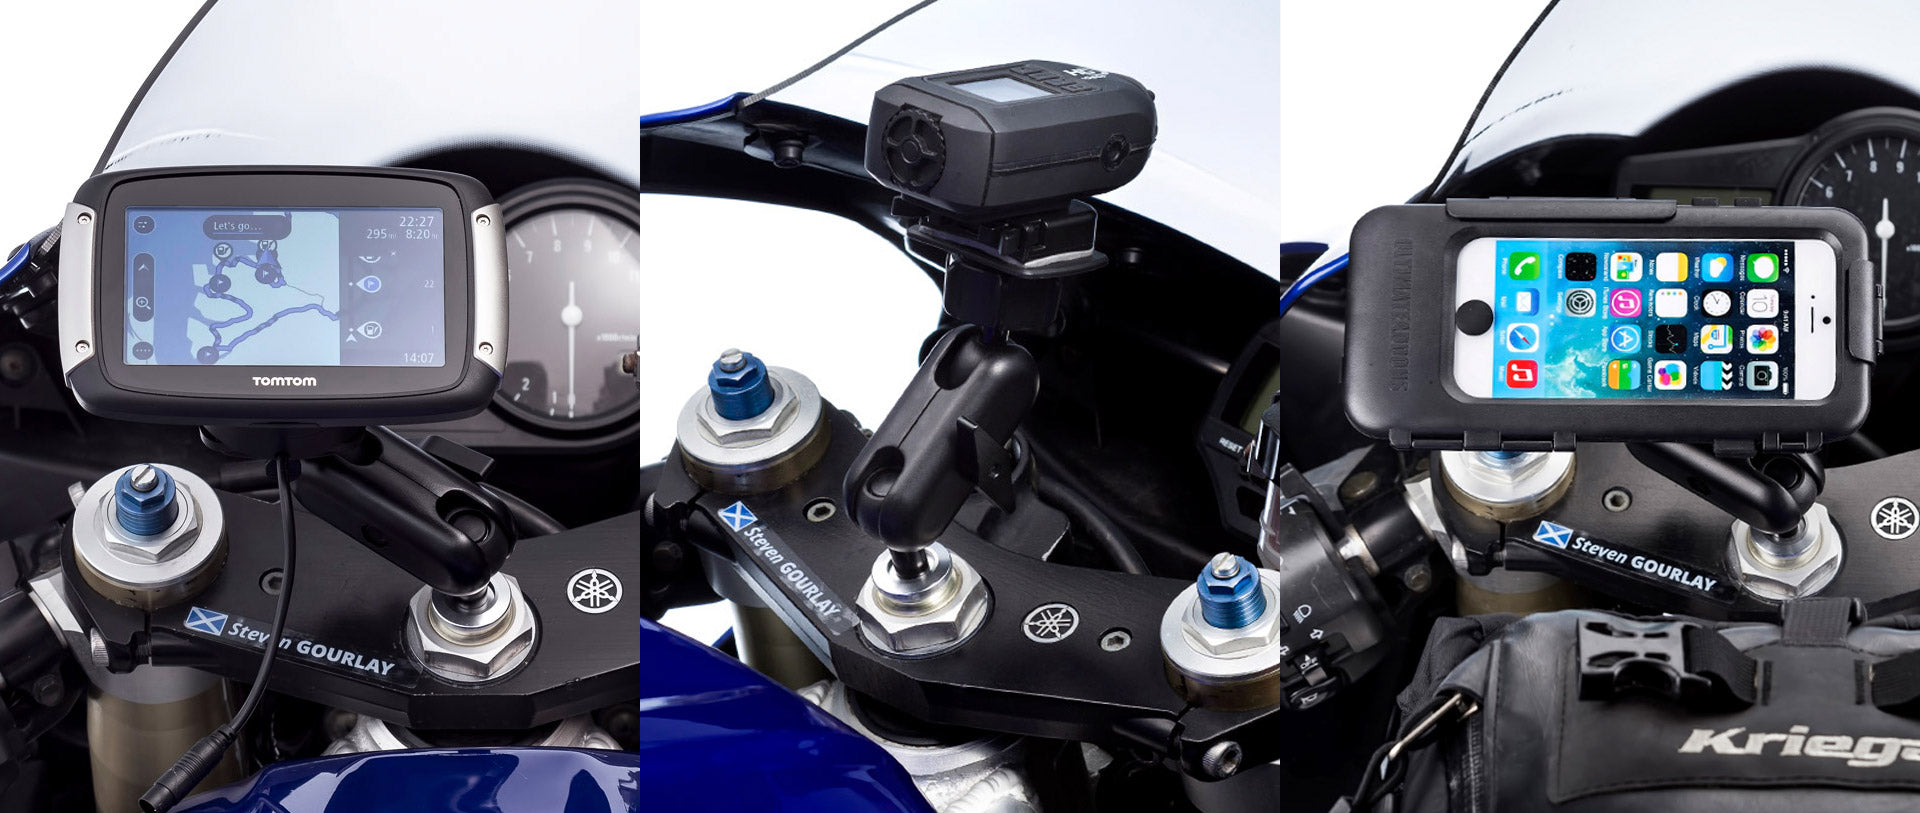 Motorcycle Mount Extender